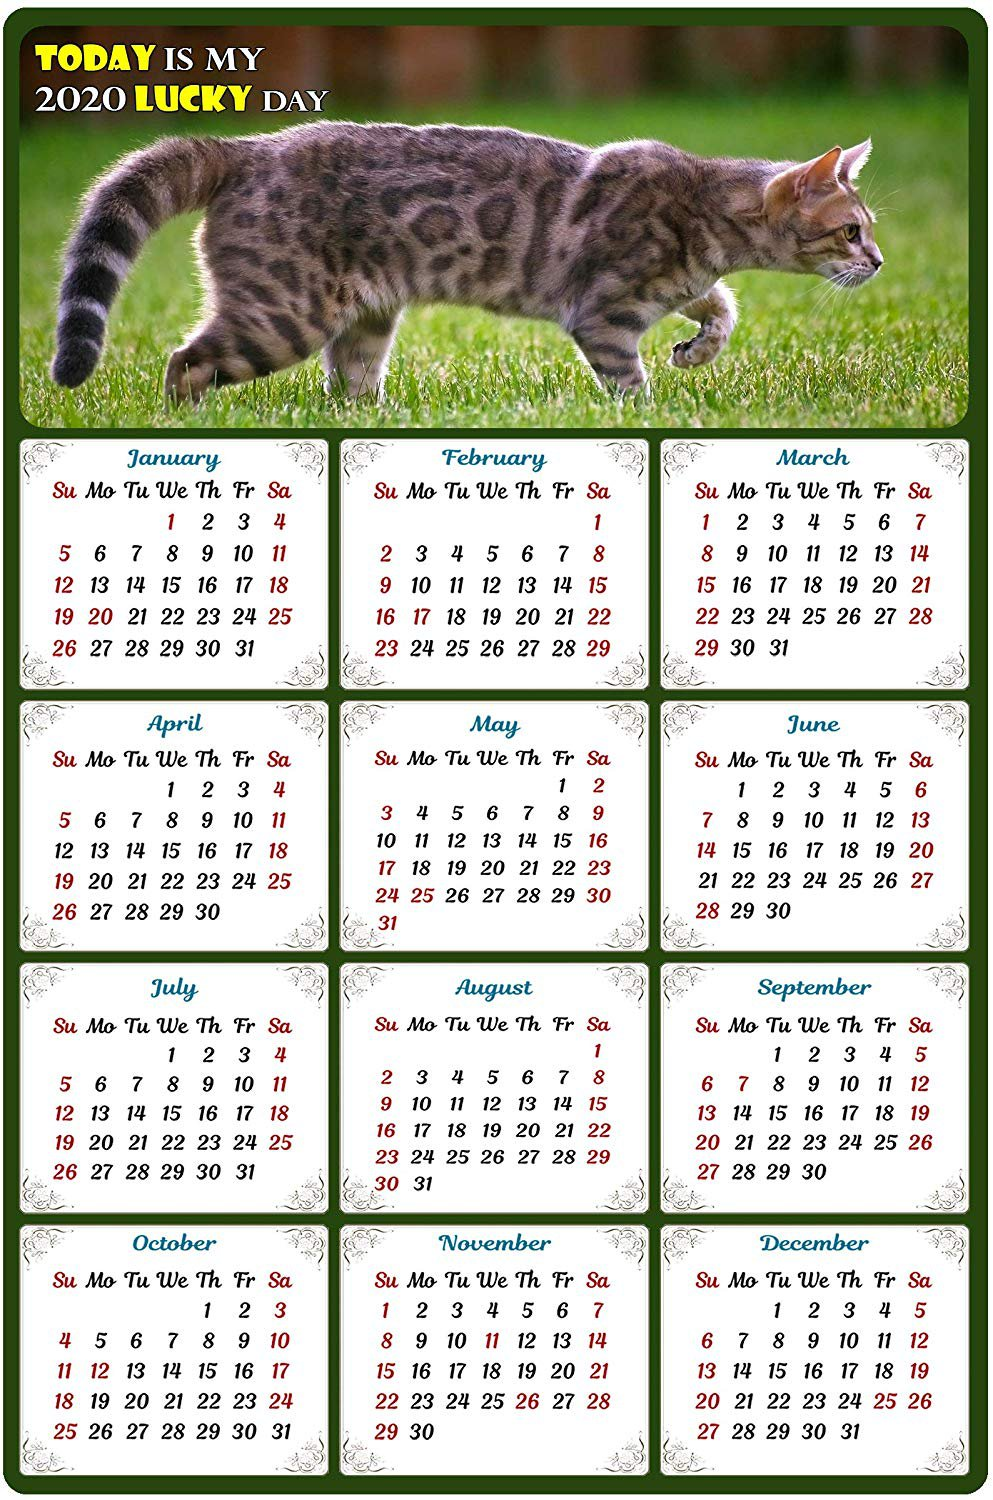 2020 Magnetic Calendar - Calendar Magnets - Today is My Lucky Day - Cat Themed 9